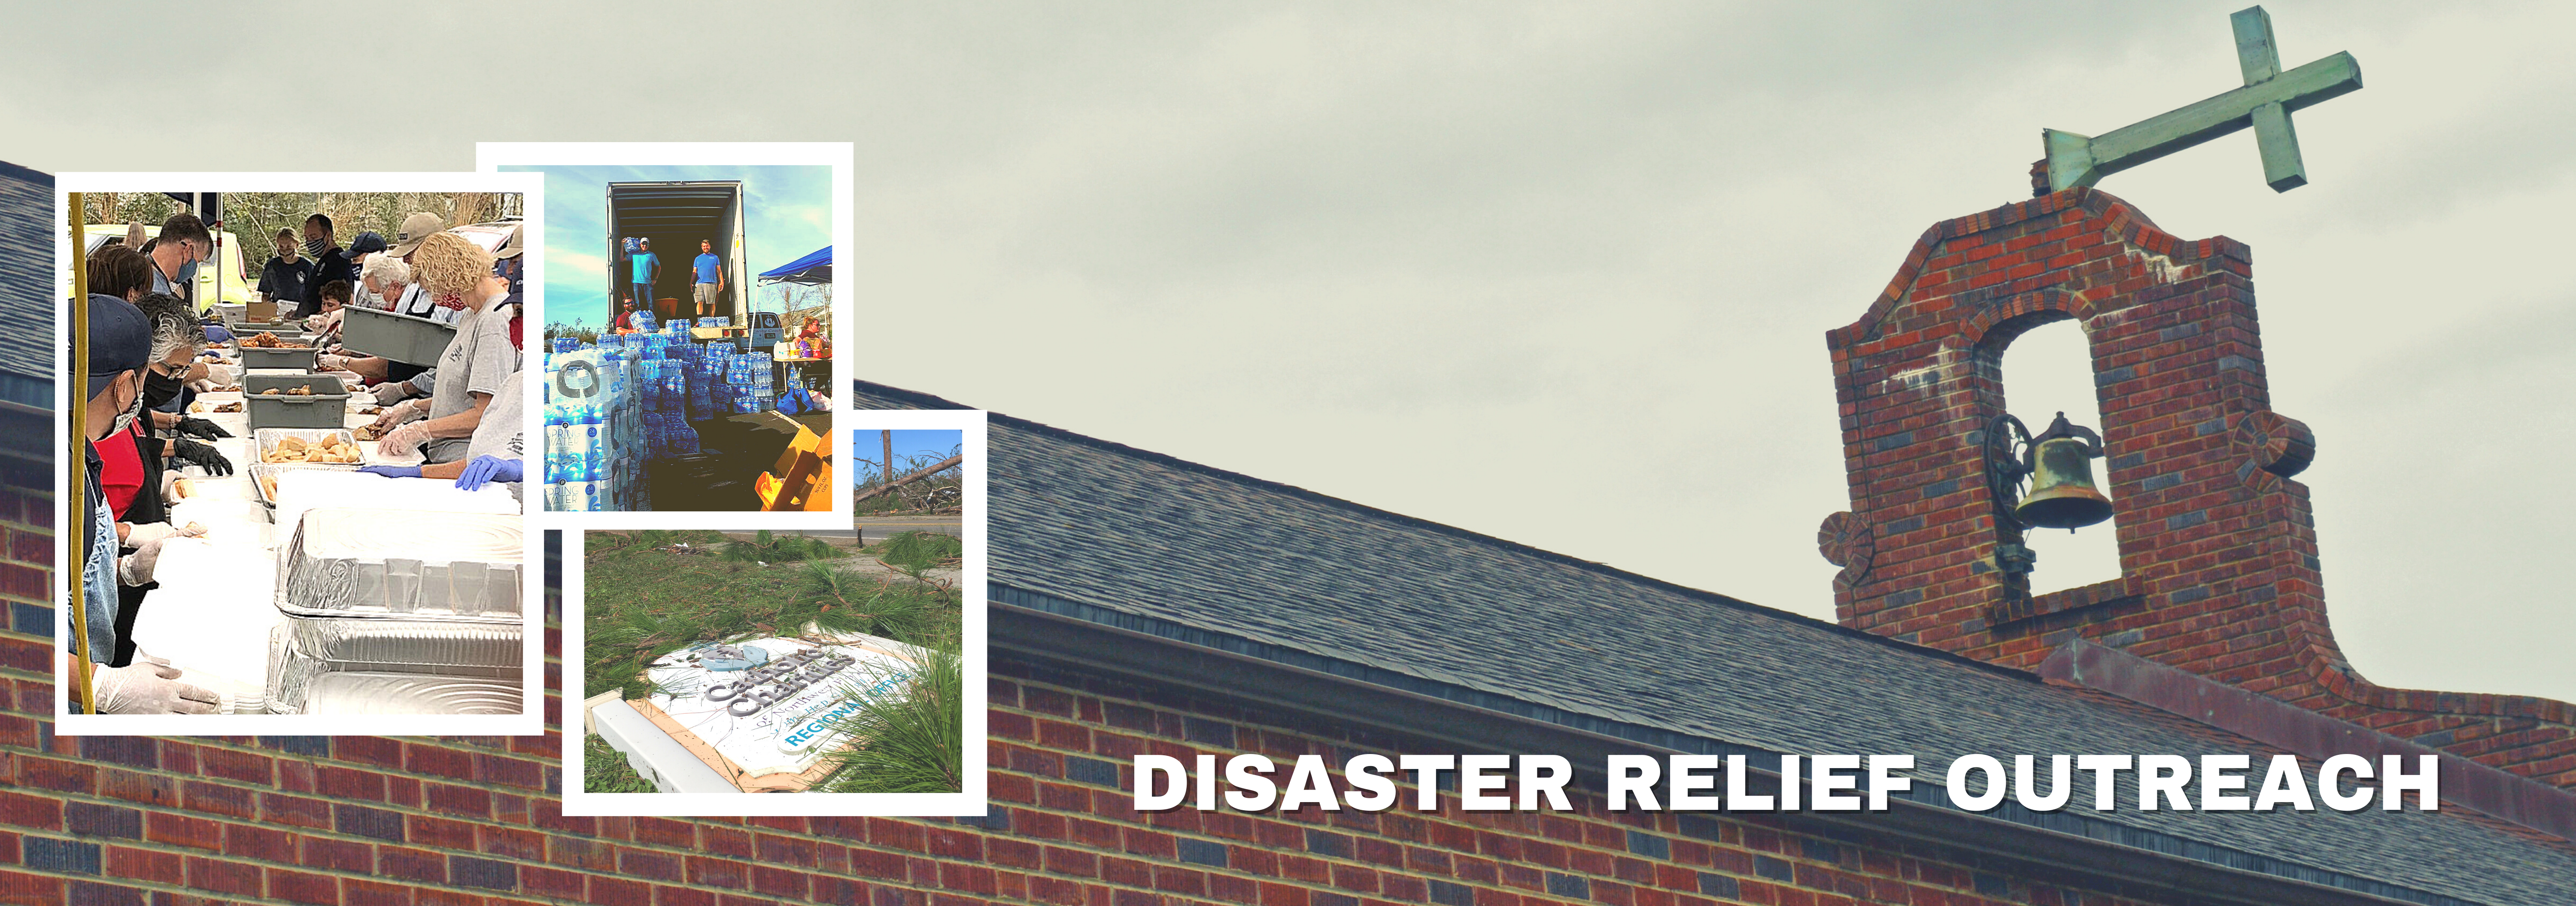 WEB Disaster Relief Page Header 2